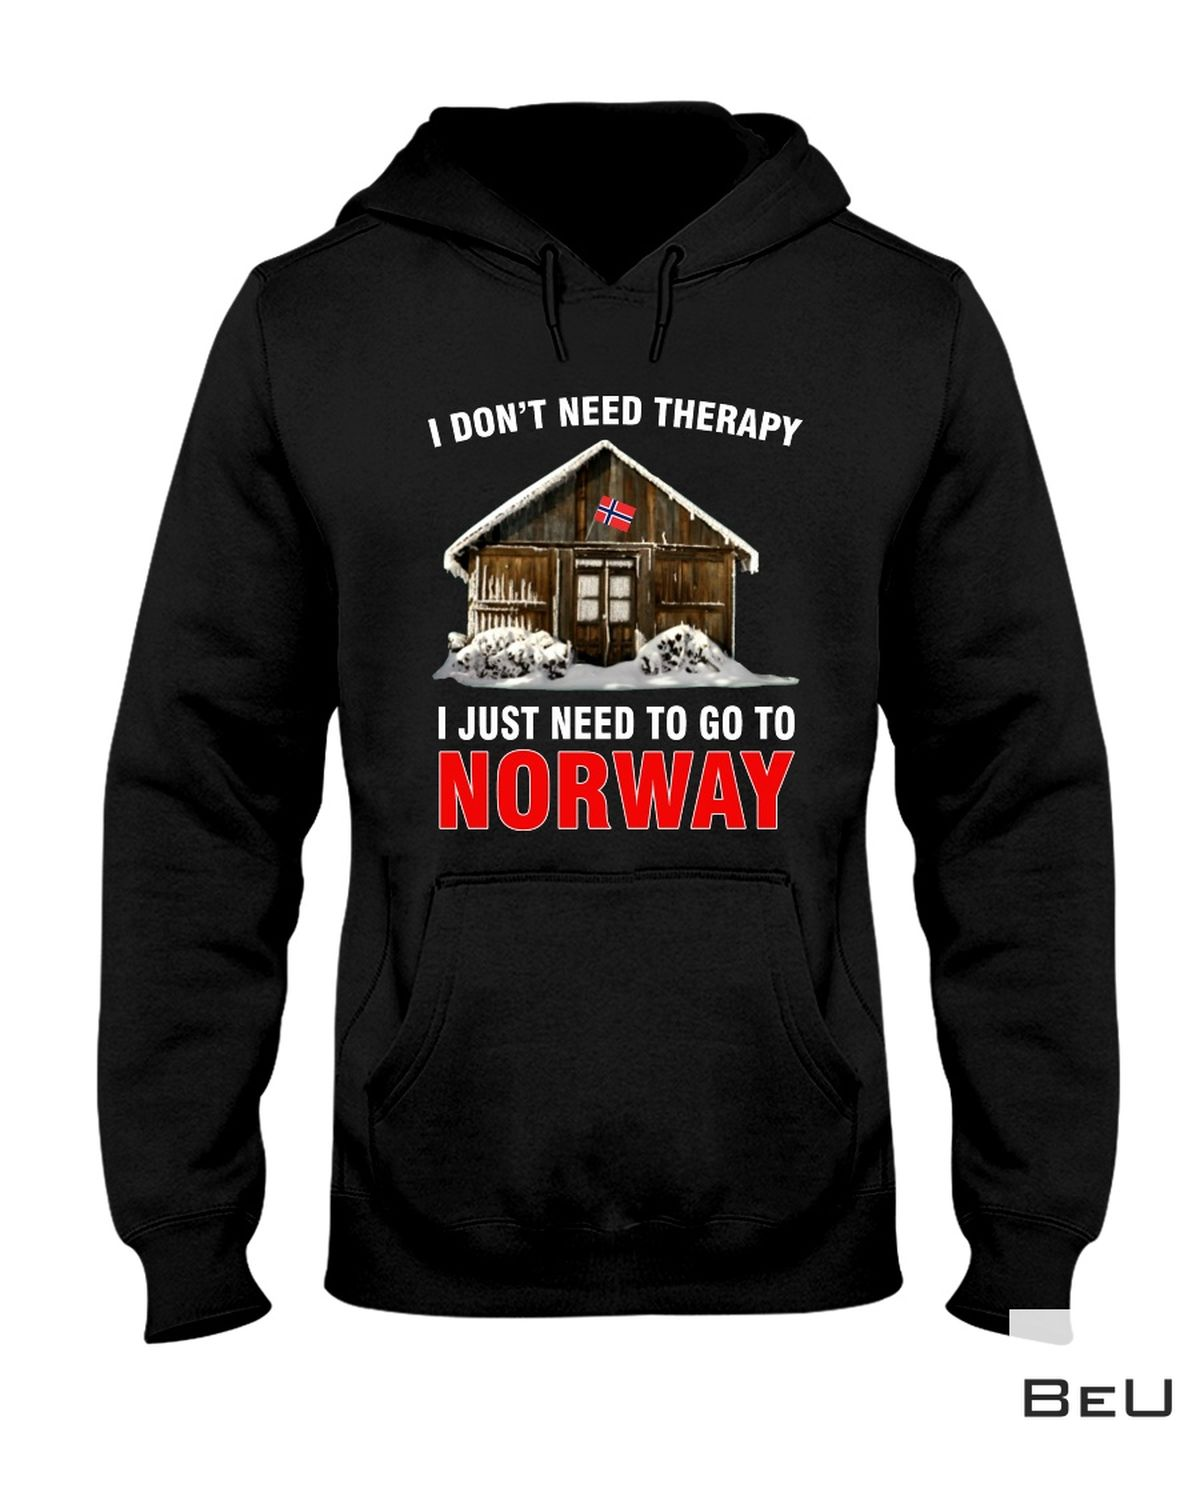 Print On Demand I Don't Need Therapy I Just Need To Go To Norway Shirt, hoodie, tank top